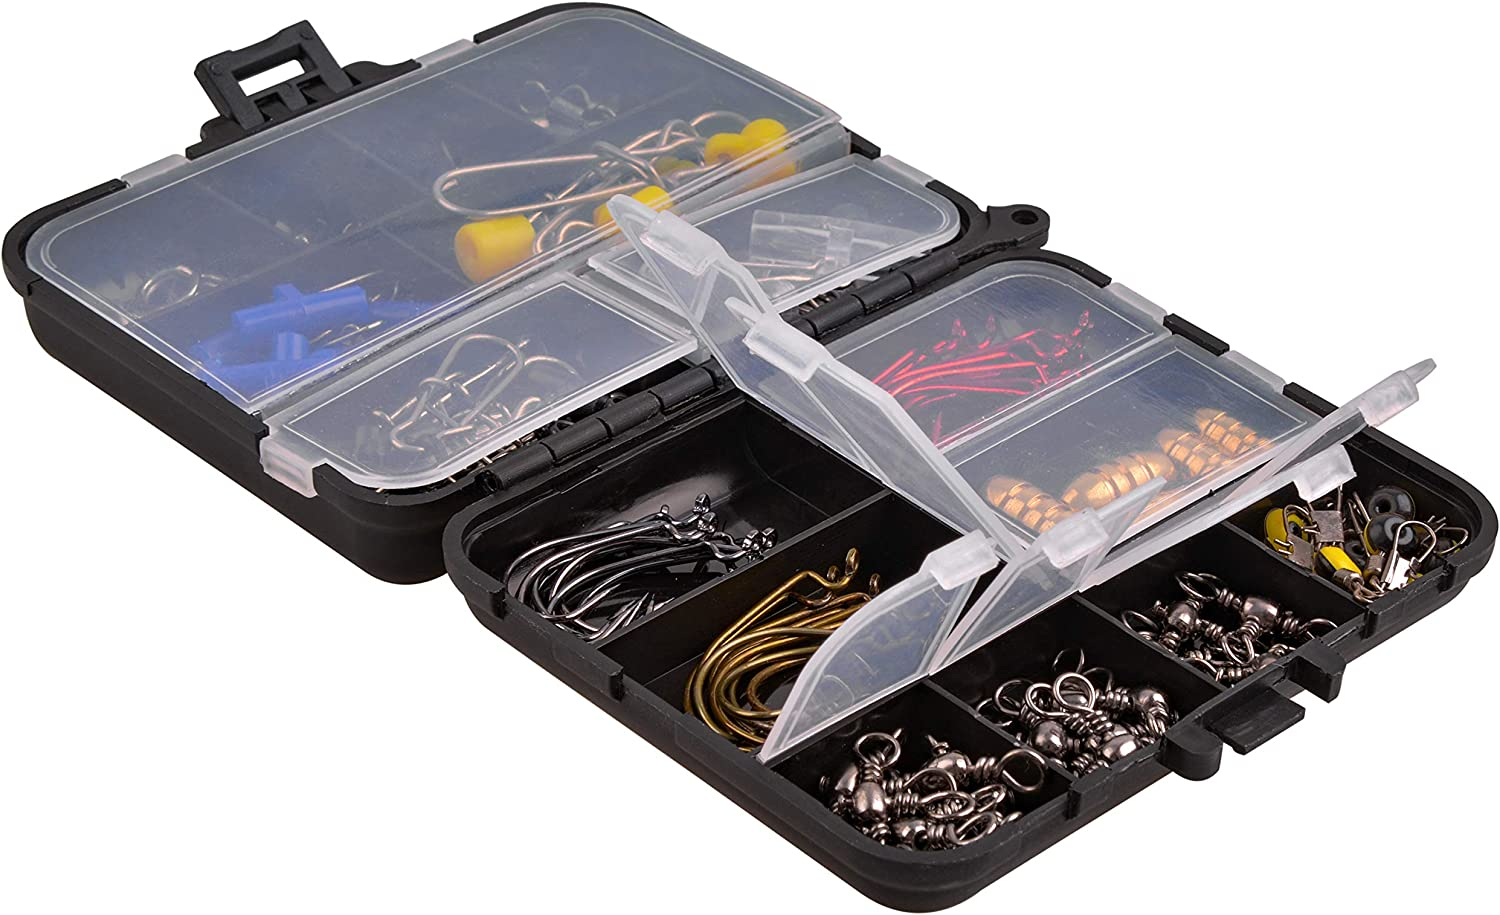 Fishing Gears Kit with Box Fishing Terminal Tackle Accessories Including Jig Hooks Sinker Slides Fishing Swivels Snaps 130pcs Fishing Accessories Tackle Box Kit Brass Copper Sinker Weights